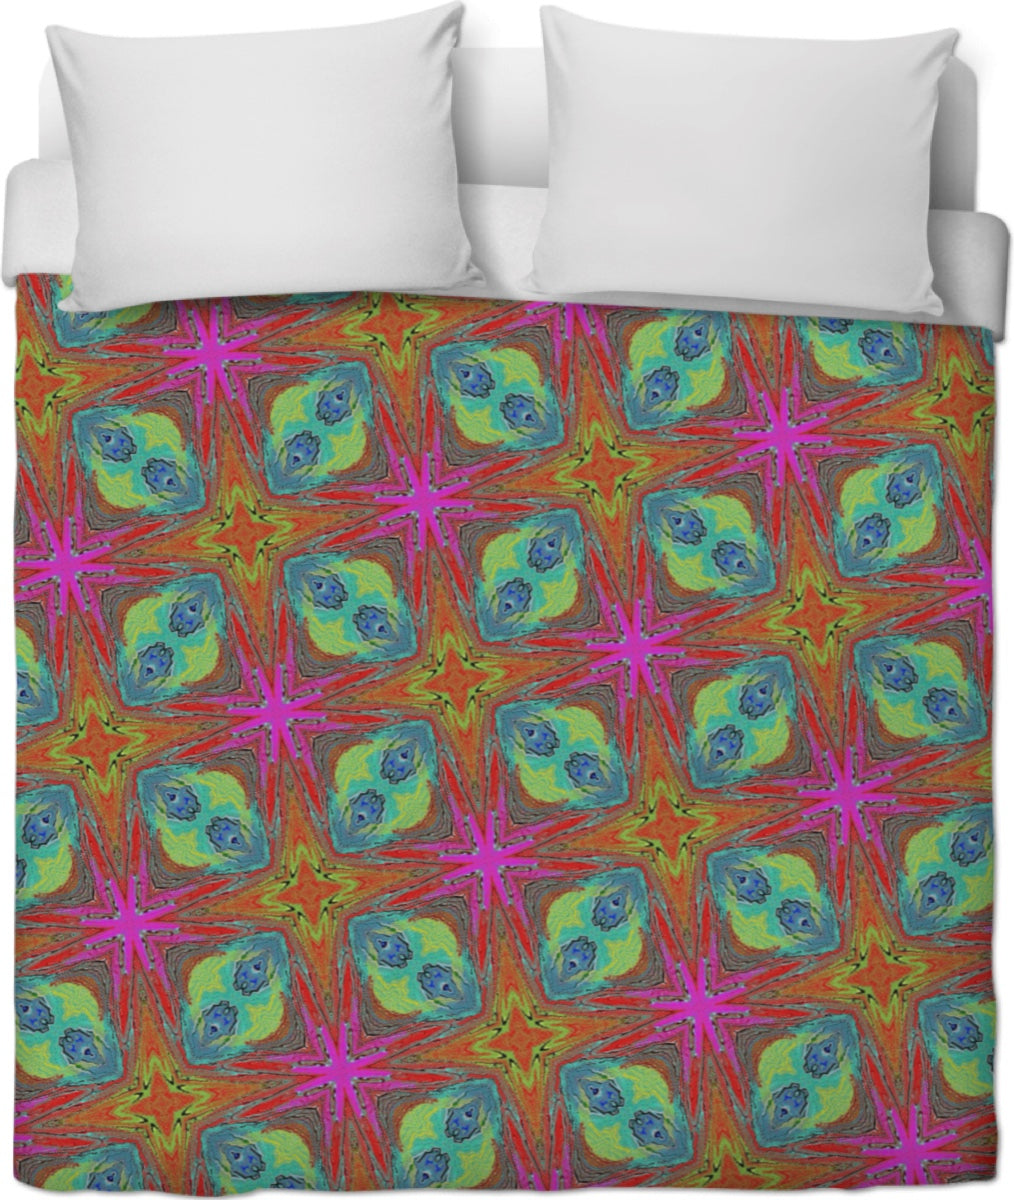 Duvet covers Pattern Collection168